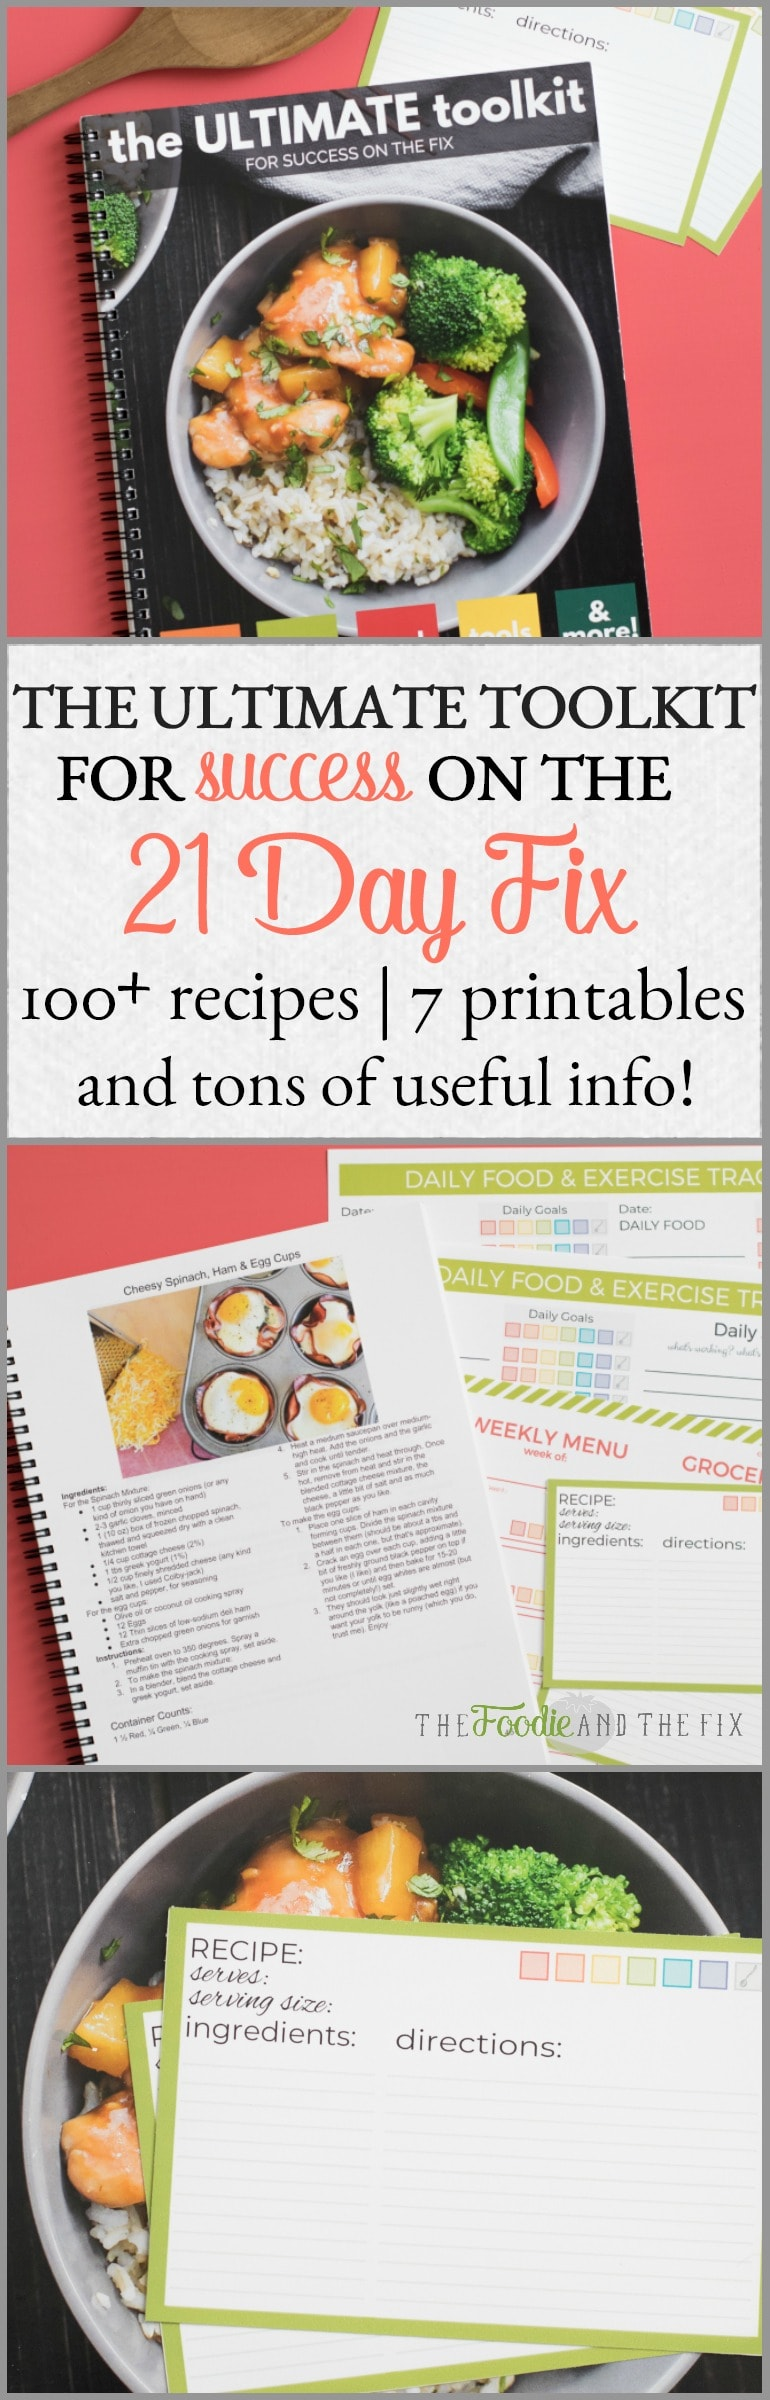 I'm bringing you The Ultimate Toolkit for success on the 21 Day Fix! It has tons of recipes, printables, meal planning tips, how to read a nutrition label, food lists, frequently asked questions and SO MUCH MORE! #21dayfix #mealplanning #healthy #healthyrecipes #healthycookbook #beachbody